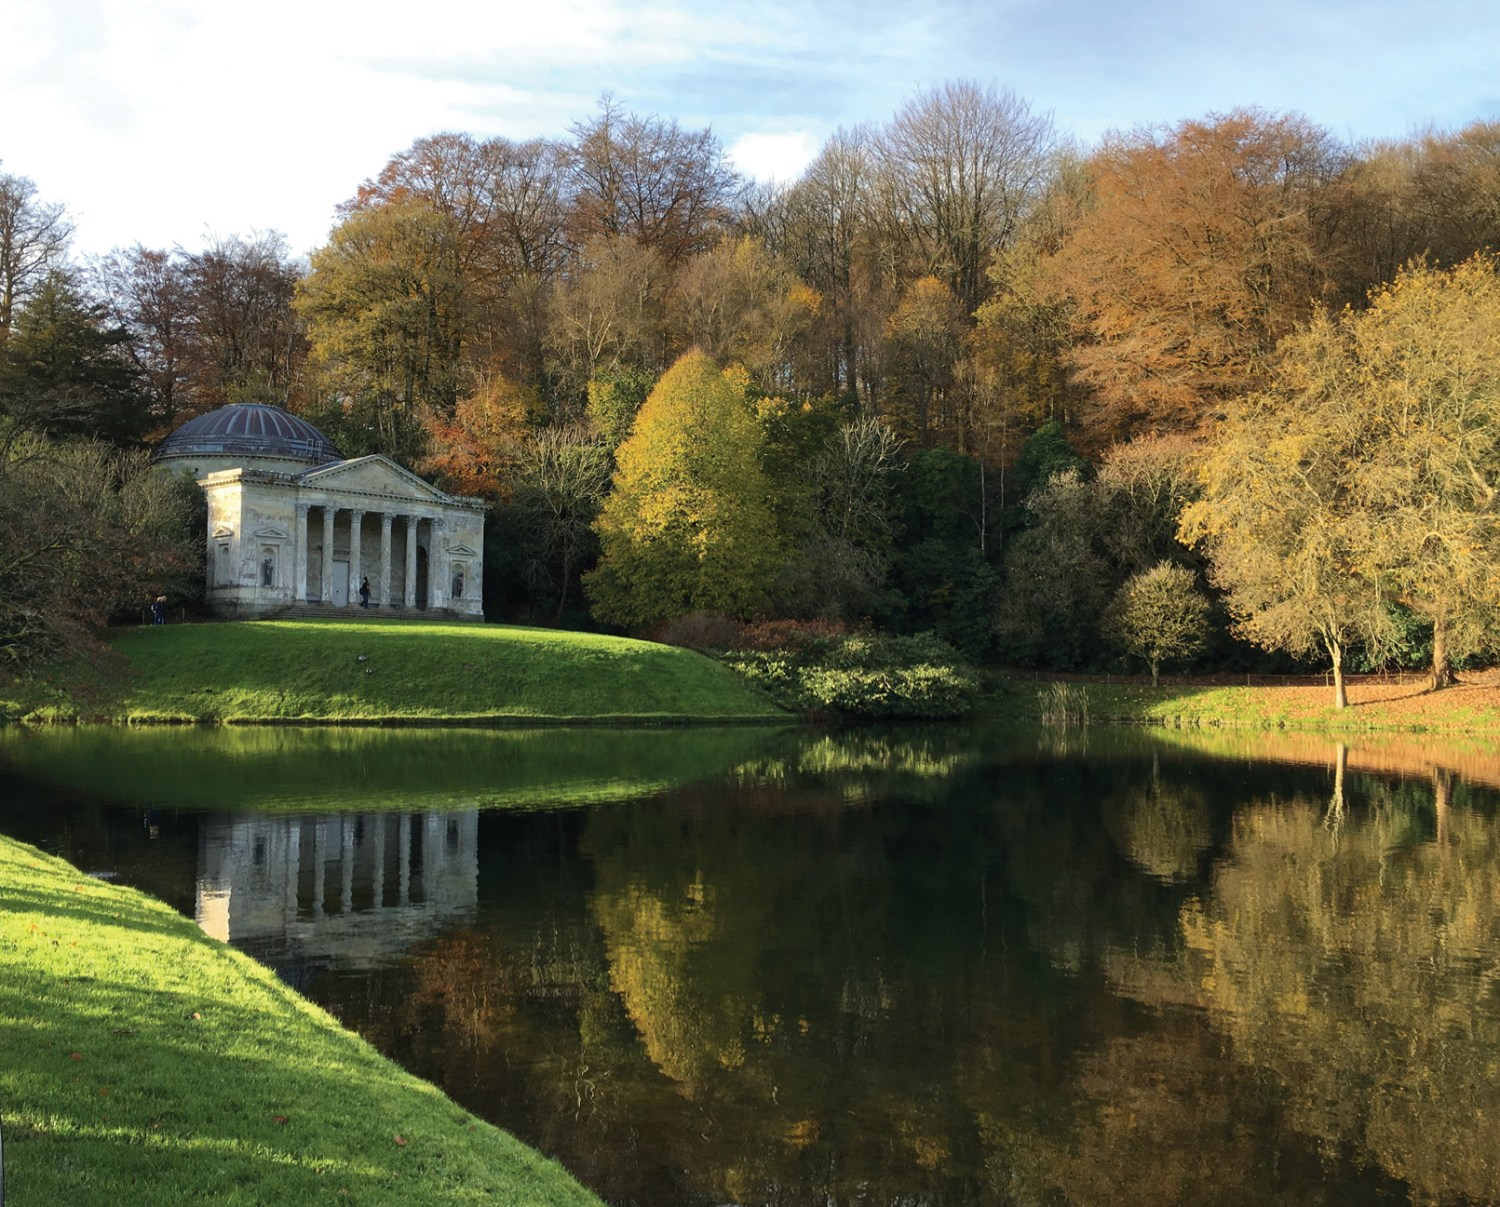 Above Garden buildings, like the Pantheon at Stourhead, Wiltshire, were carefully sited to create reflections in the lake. Many of the topographical paintings of the second half of the 18th century show the main house reflected in the lake's surface, even when this is impossible (as at Corsham Court, Wiltshire) because the house is too far from the water and at the same level with it, rather than raised.